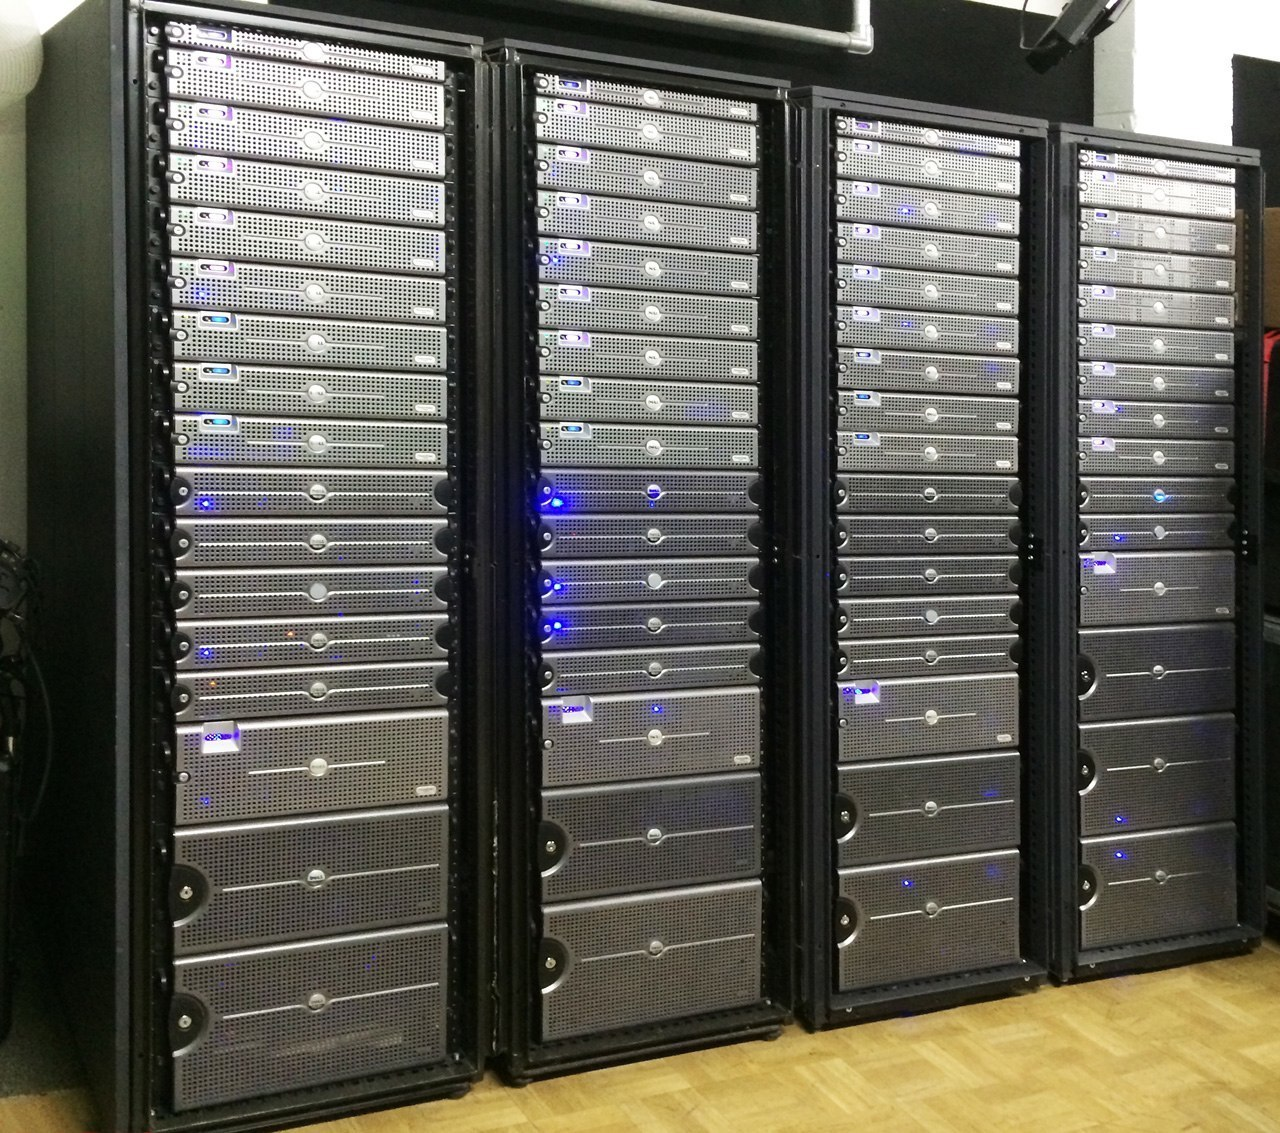 Dell Servers in Racks